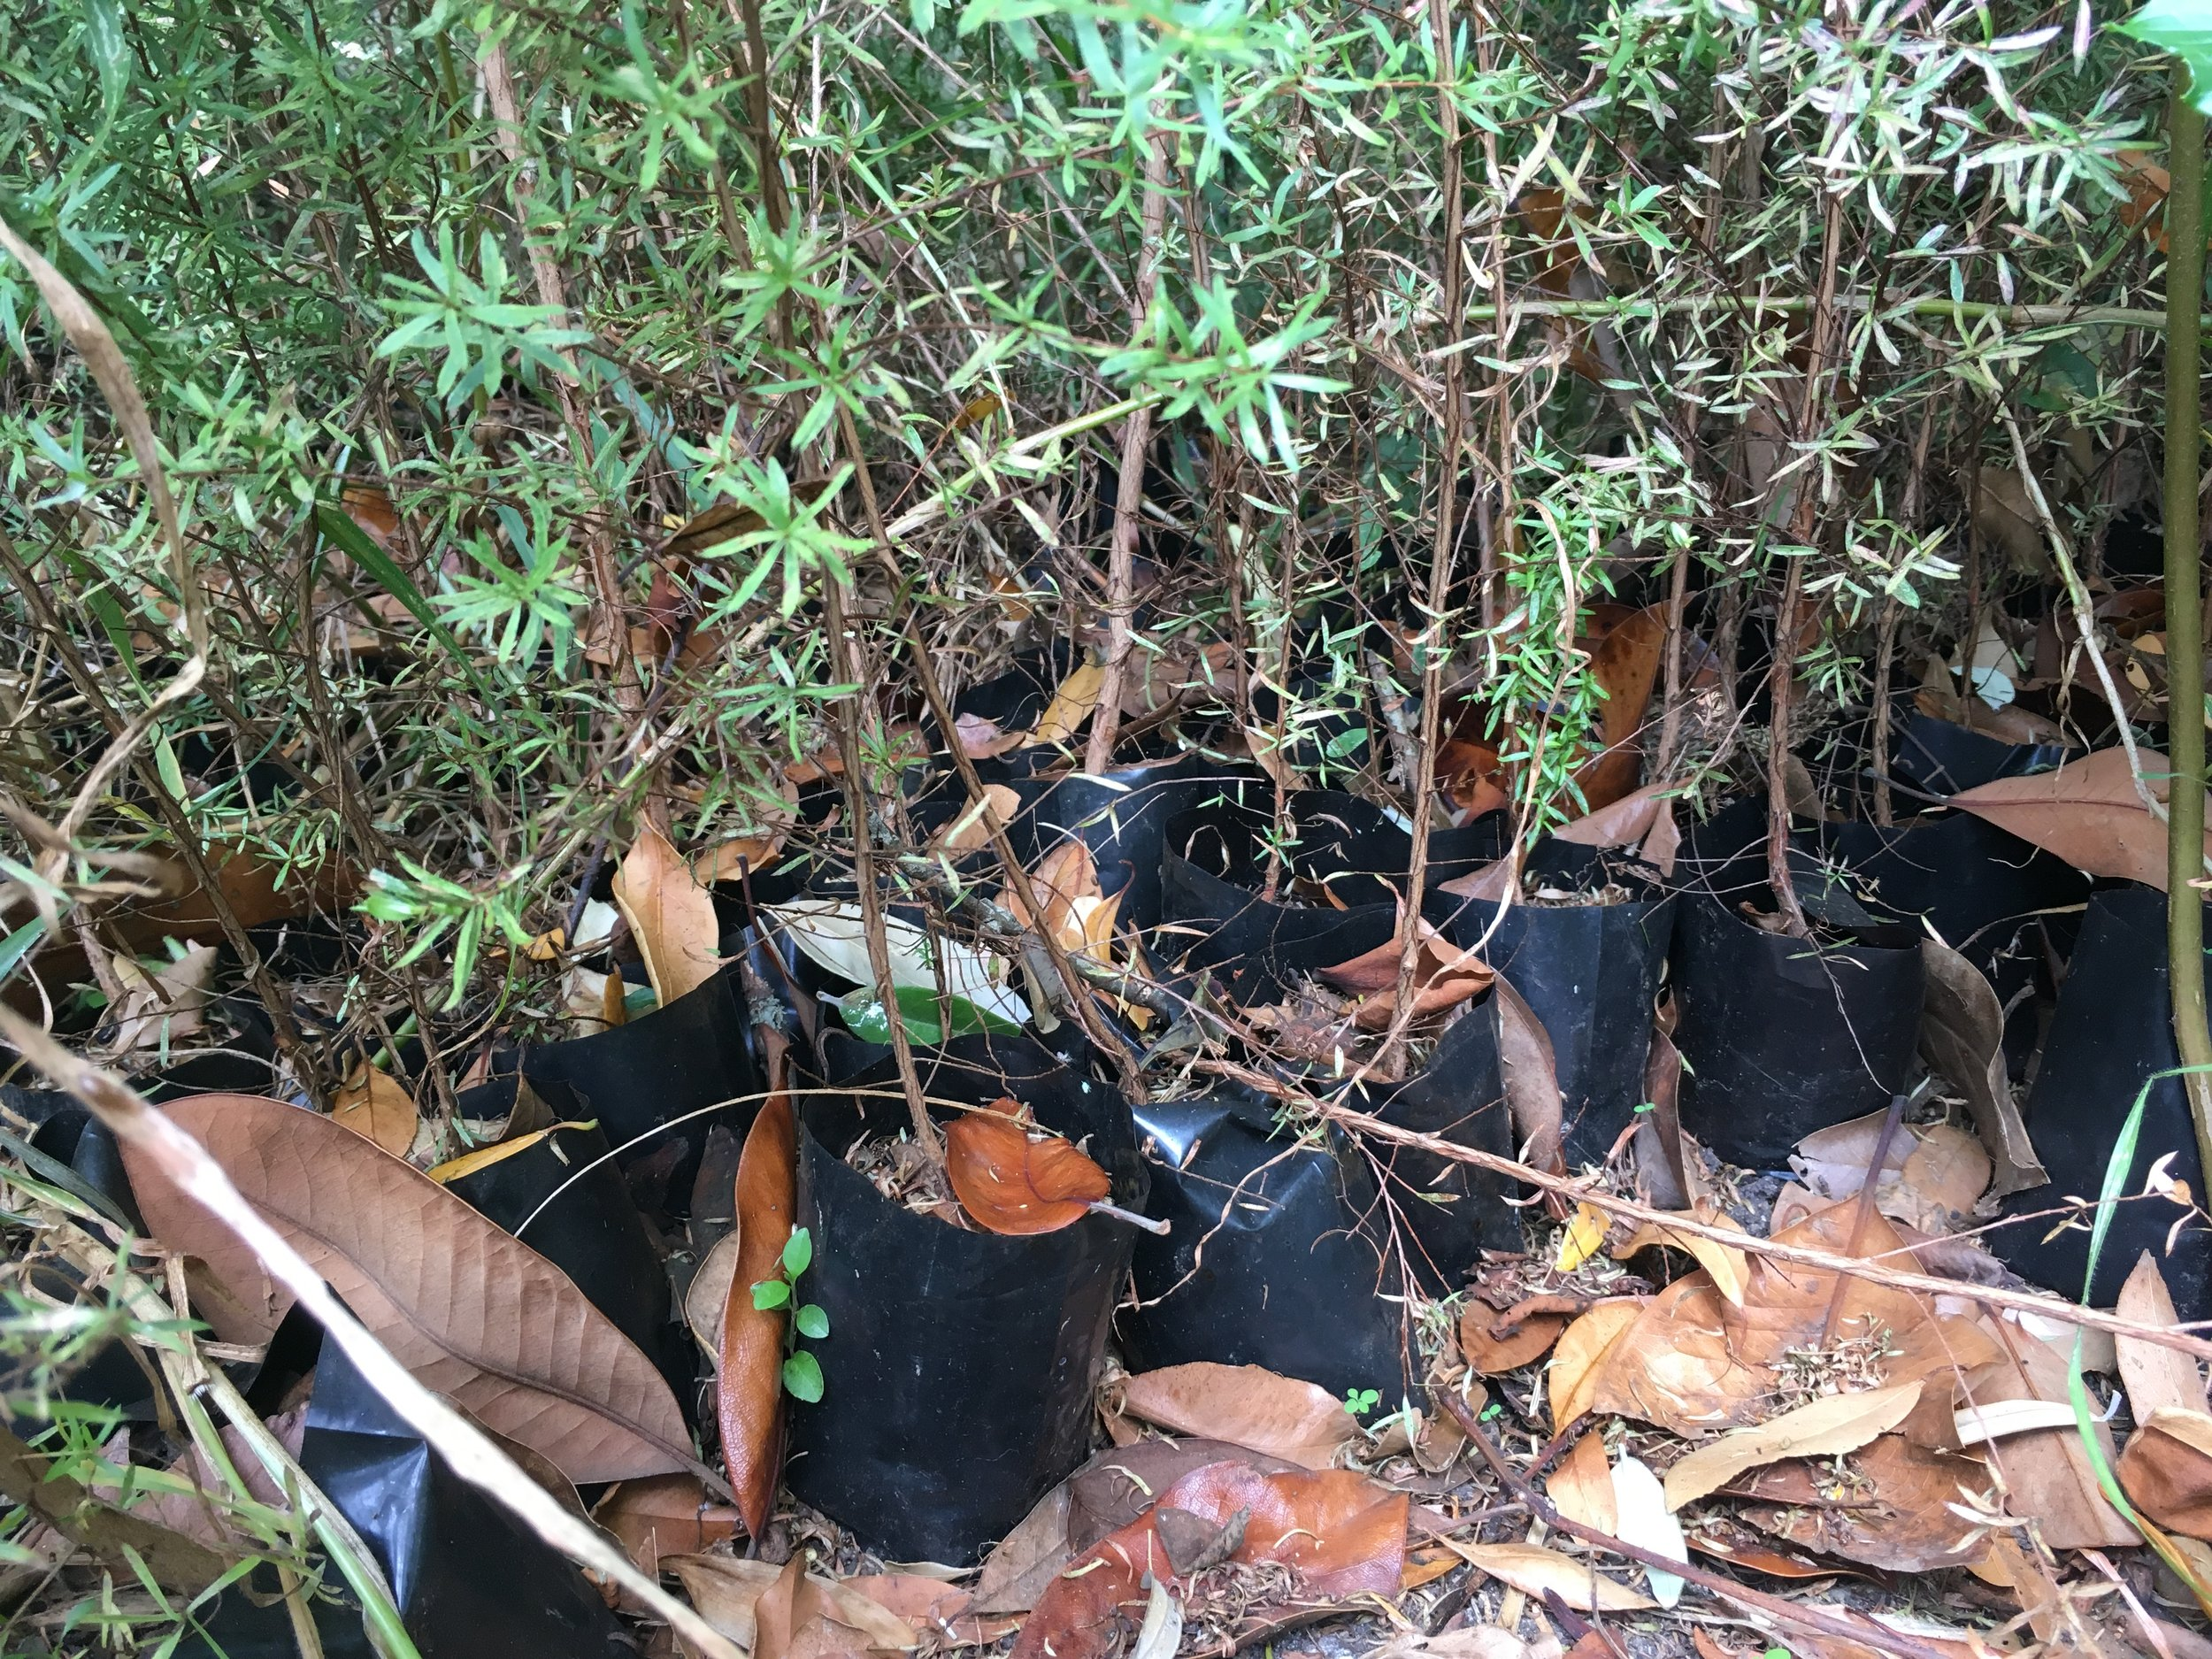 Manuka plant bags straight on the ground